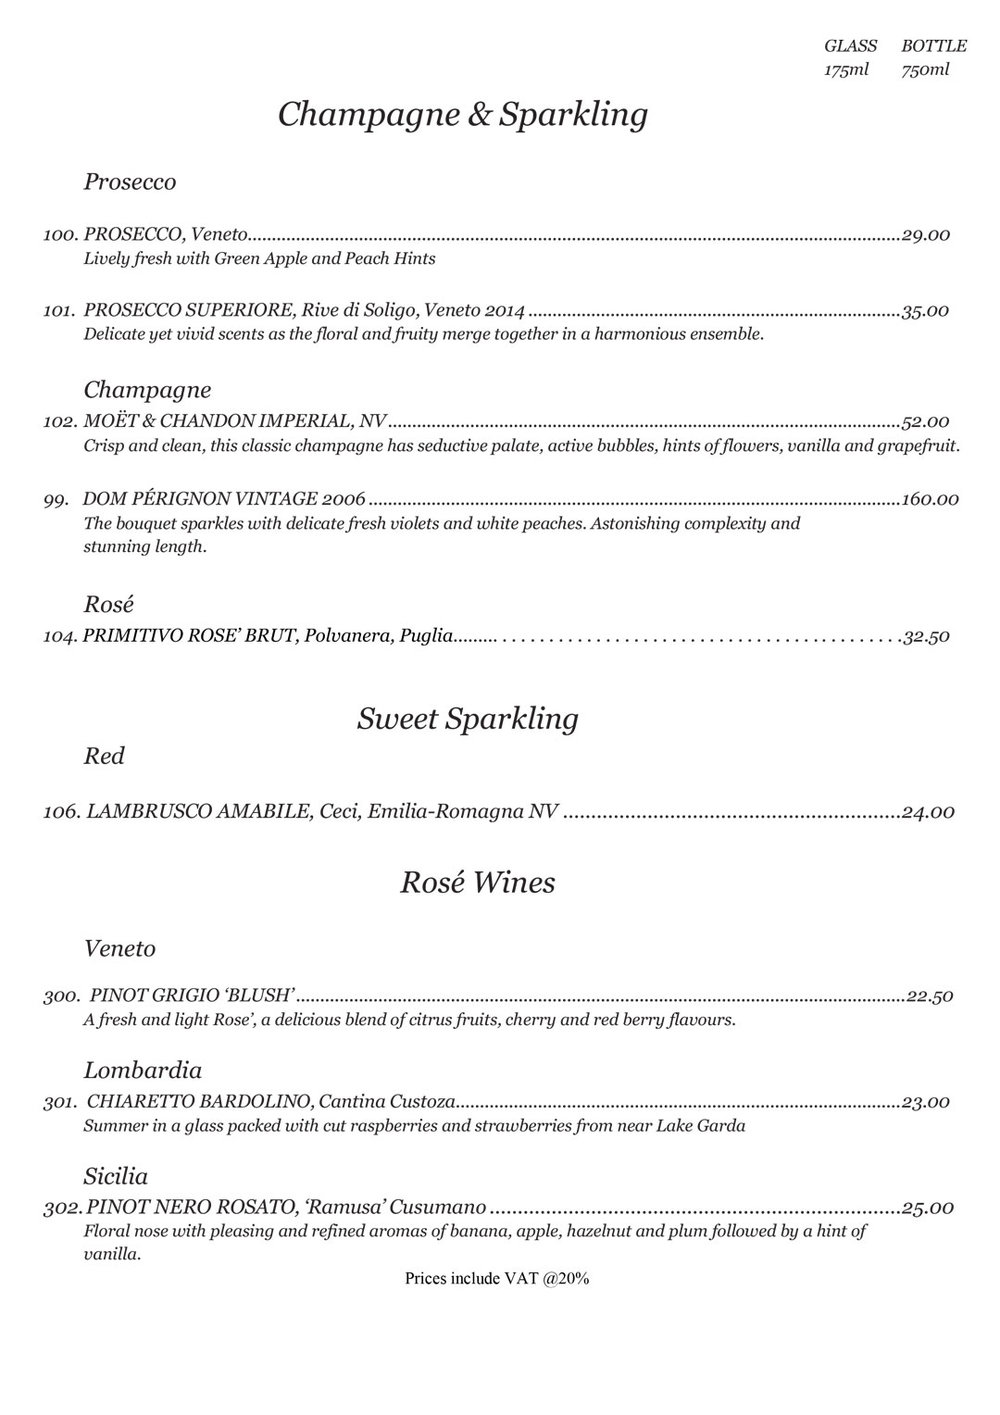 Amarone-A4-Wine-List-April-2018-Final-4-4-18_Part3.jpg